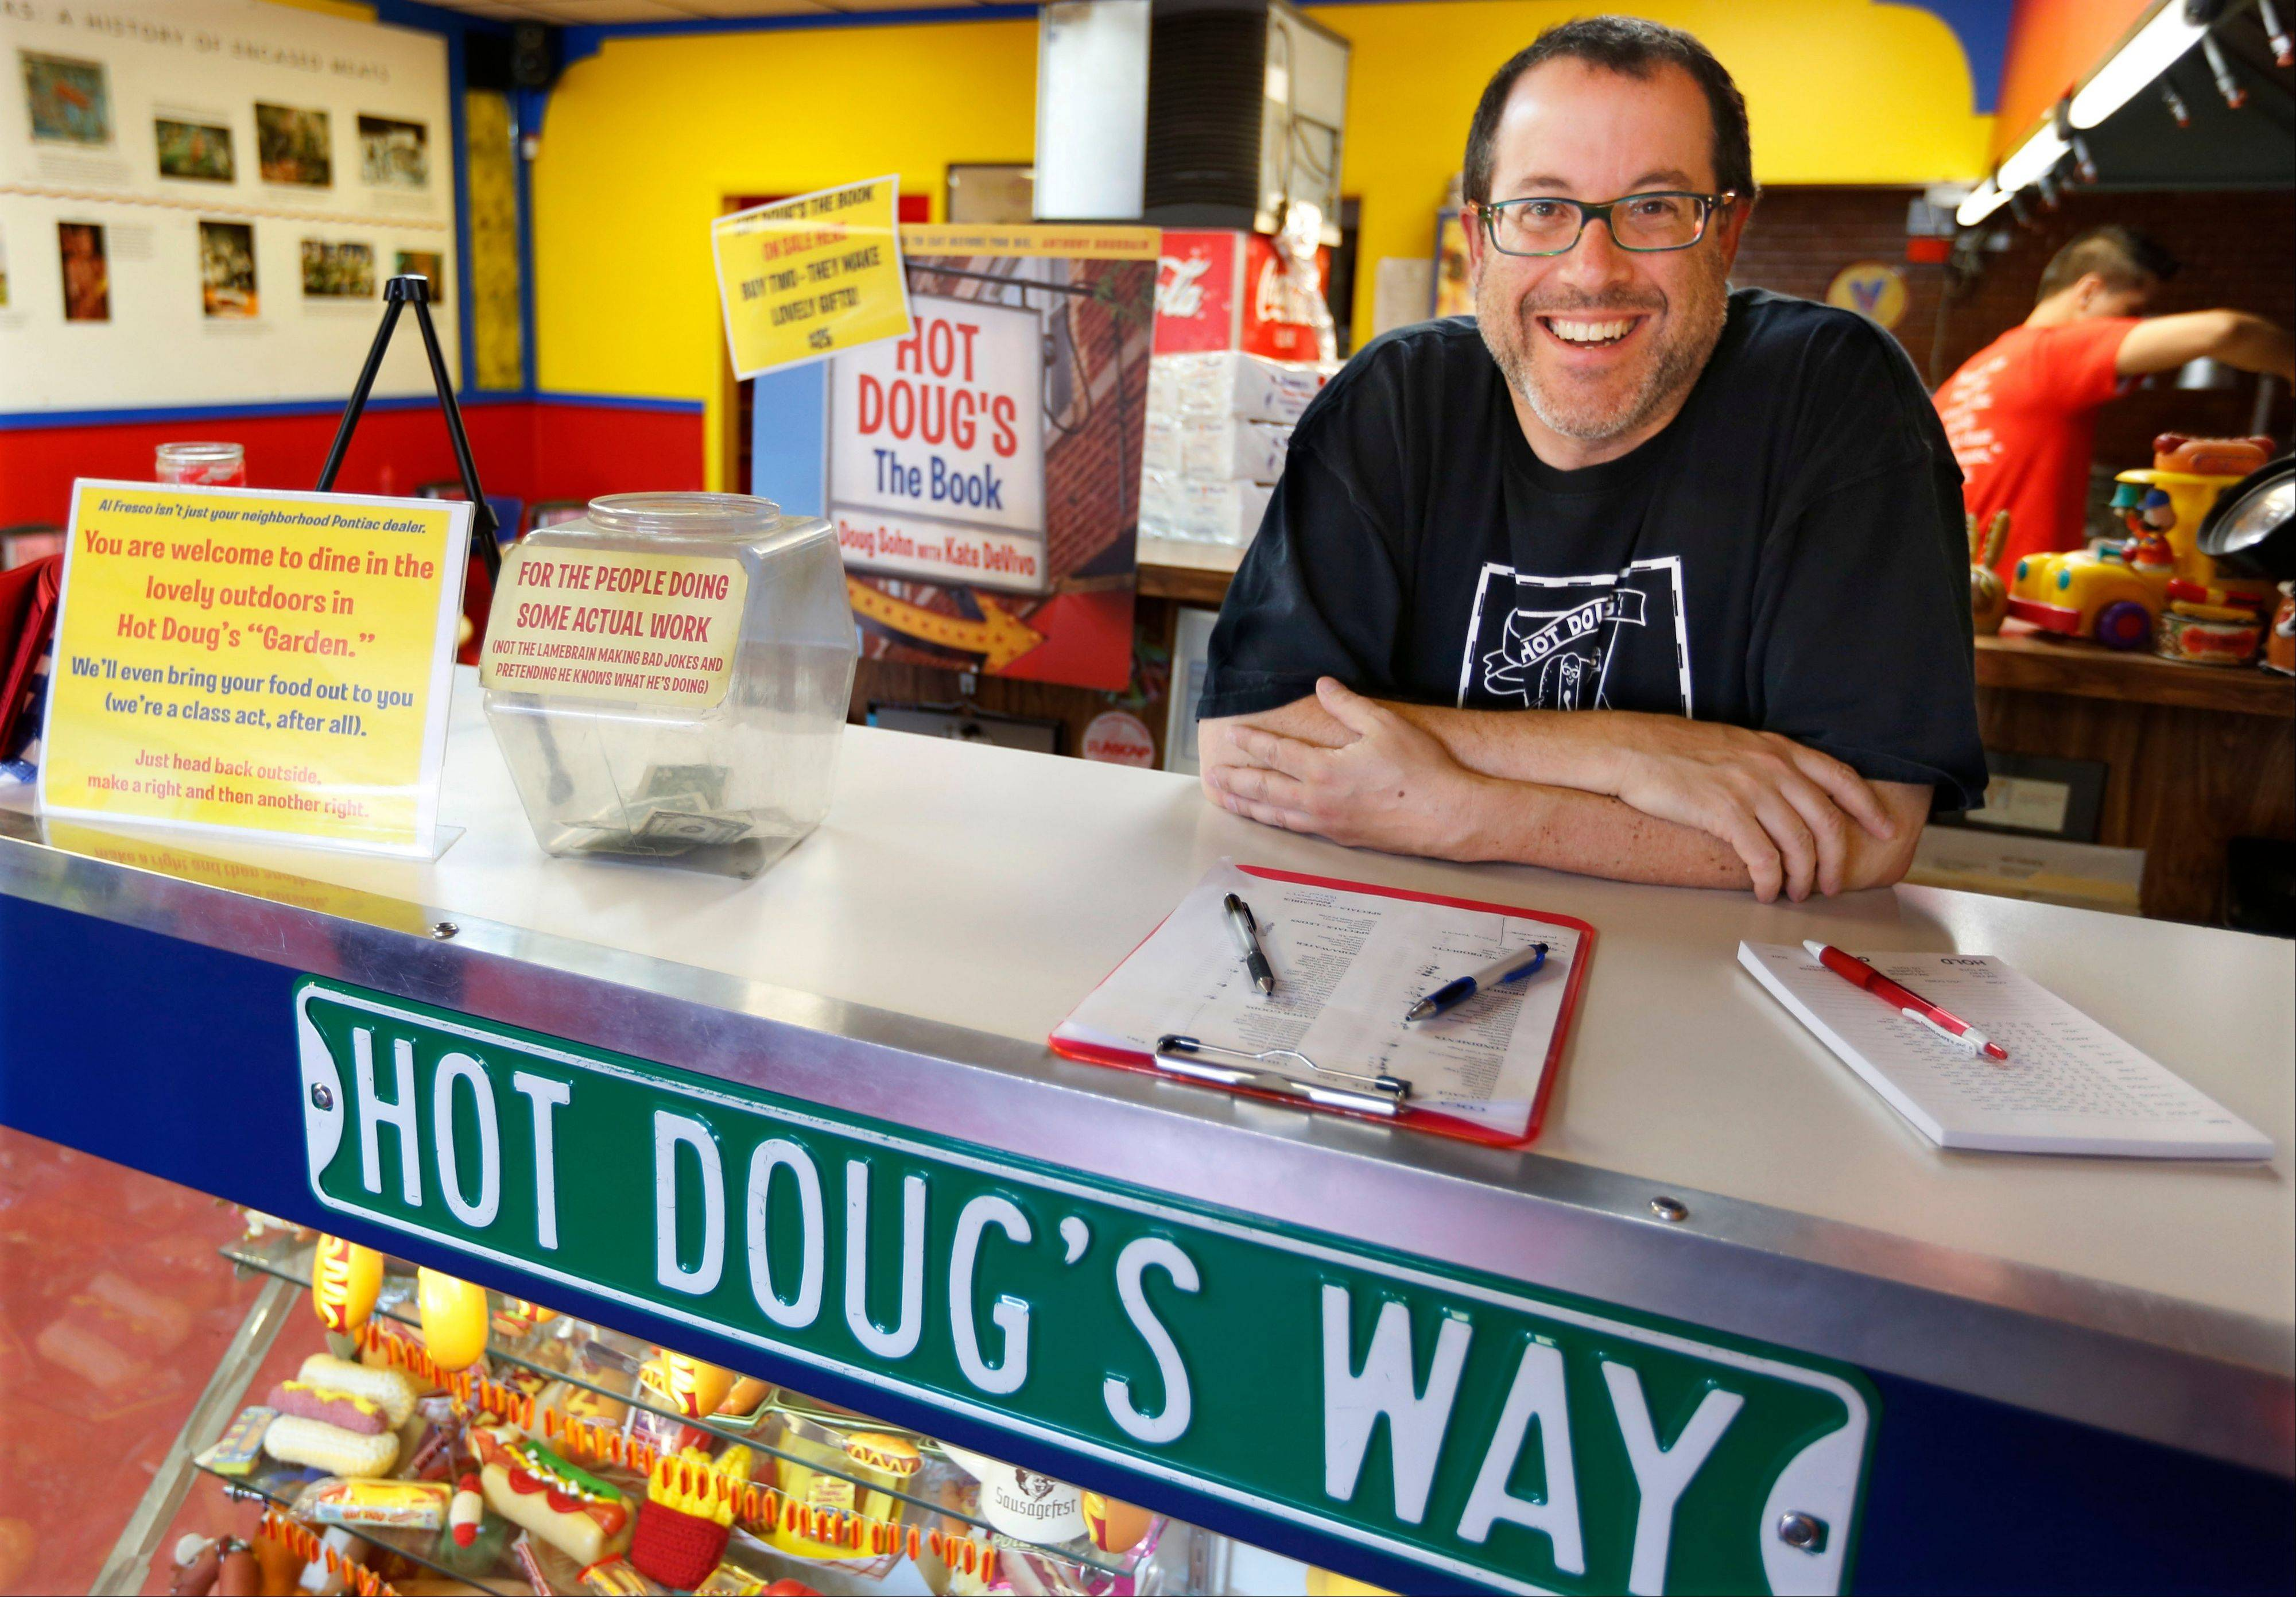 Doug Sohn, owner of Hot Doug's restaurant on the northwest side of Chicago, offers a rotating stockpile of about 100 recipes that he's created, and he gets his meats from a dozen different sausage makers.